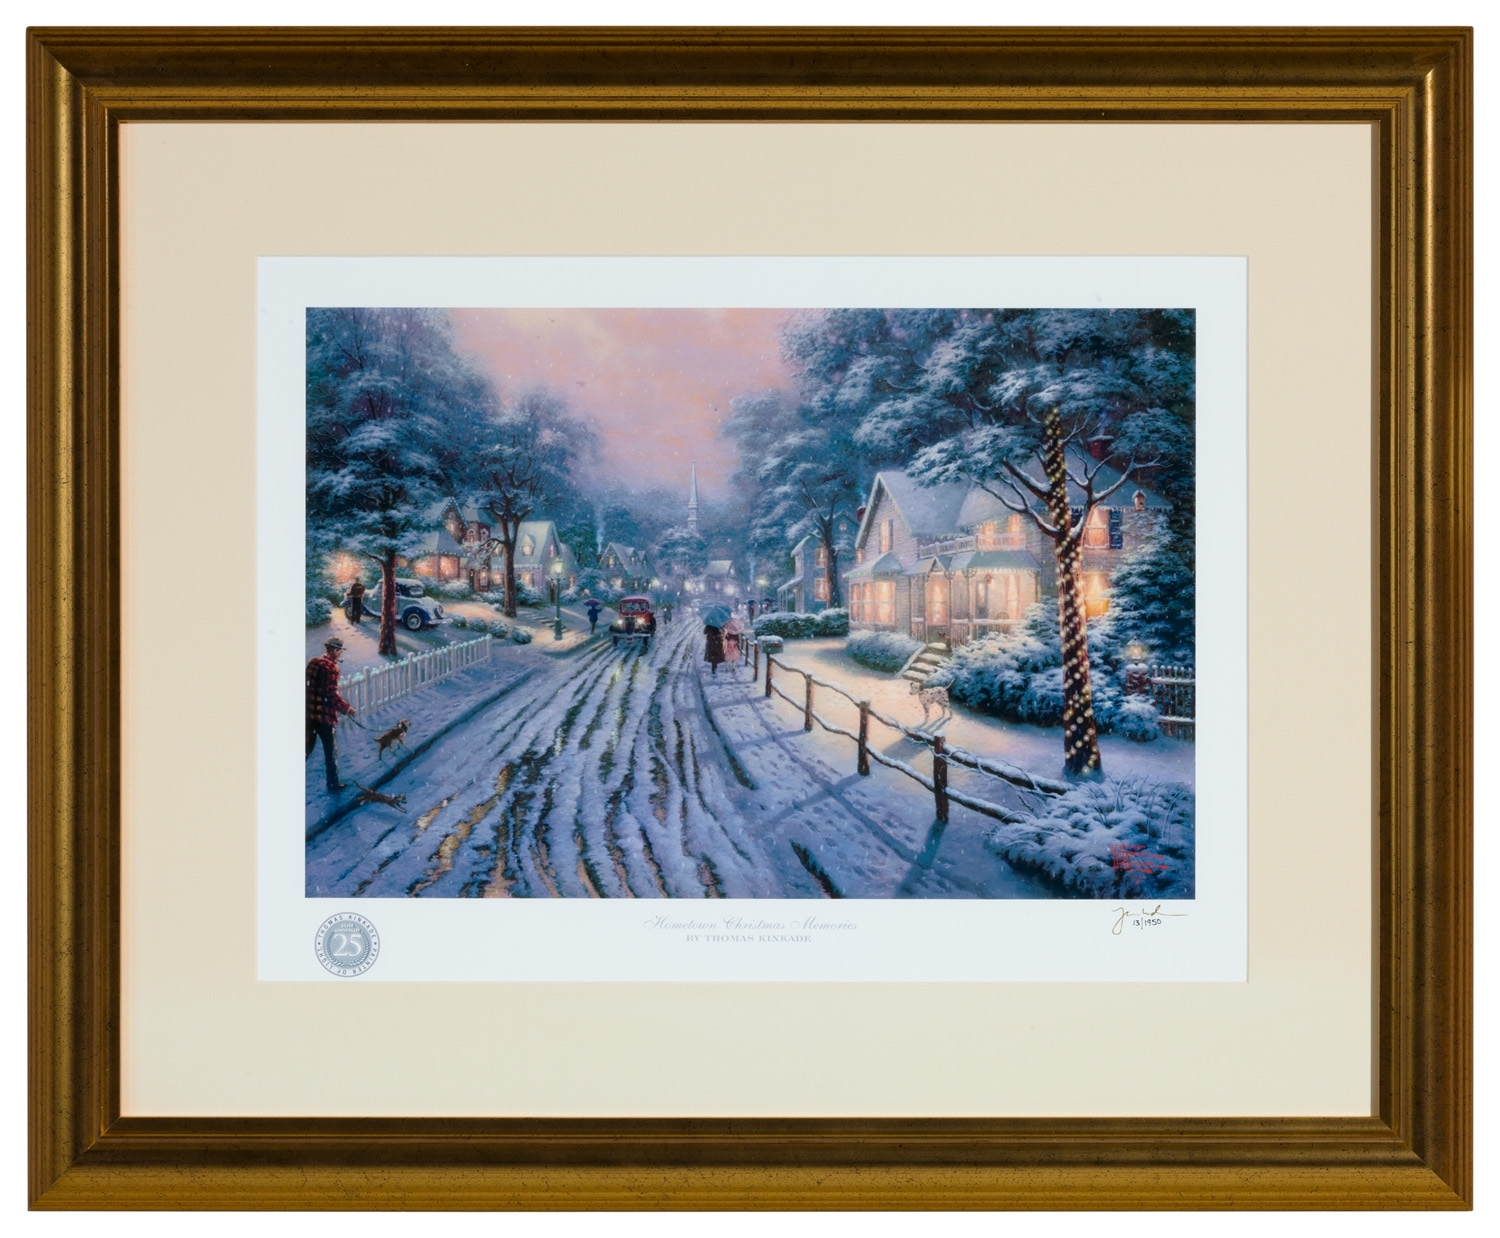 Hometown Christmas Memories – Framed Matted Print Signedthomas In Best And Newest Framed And Matted Art Prints (Gallery 7 of 15)